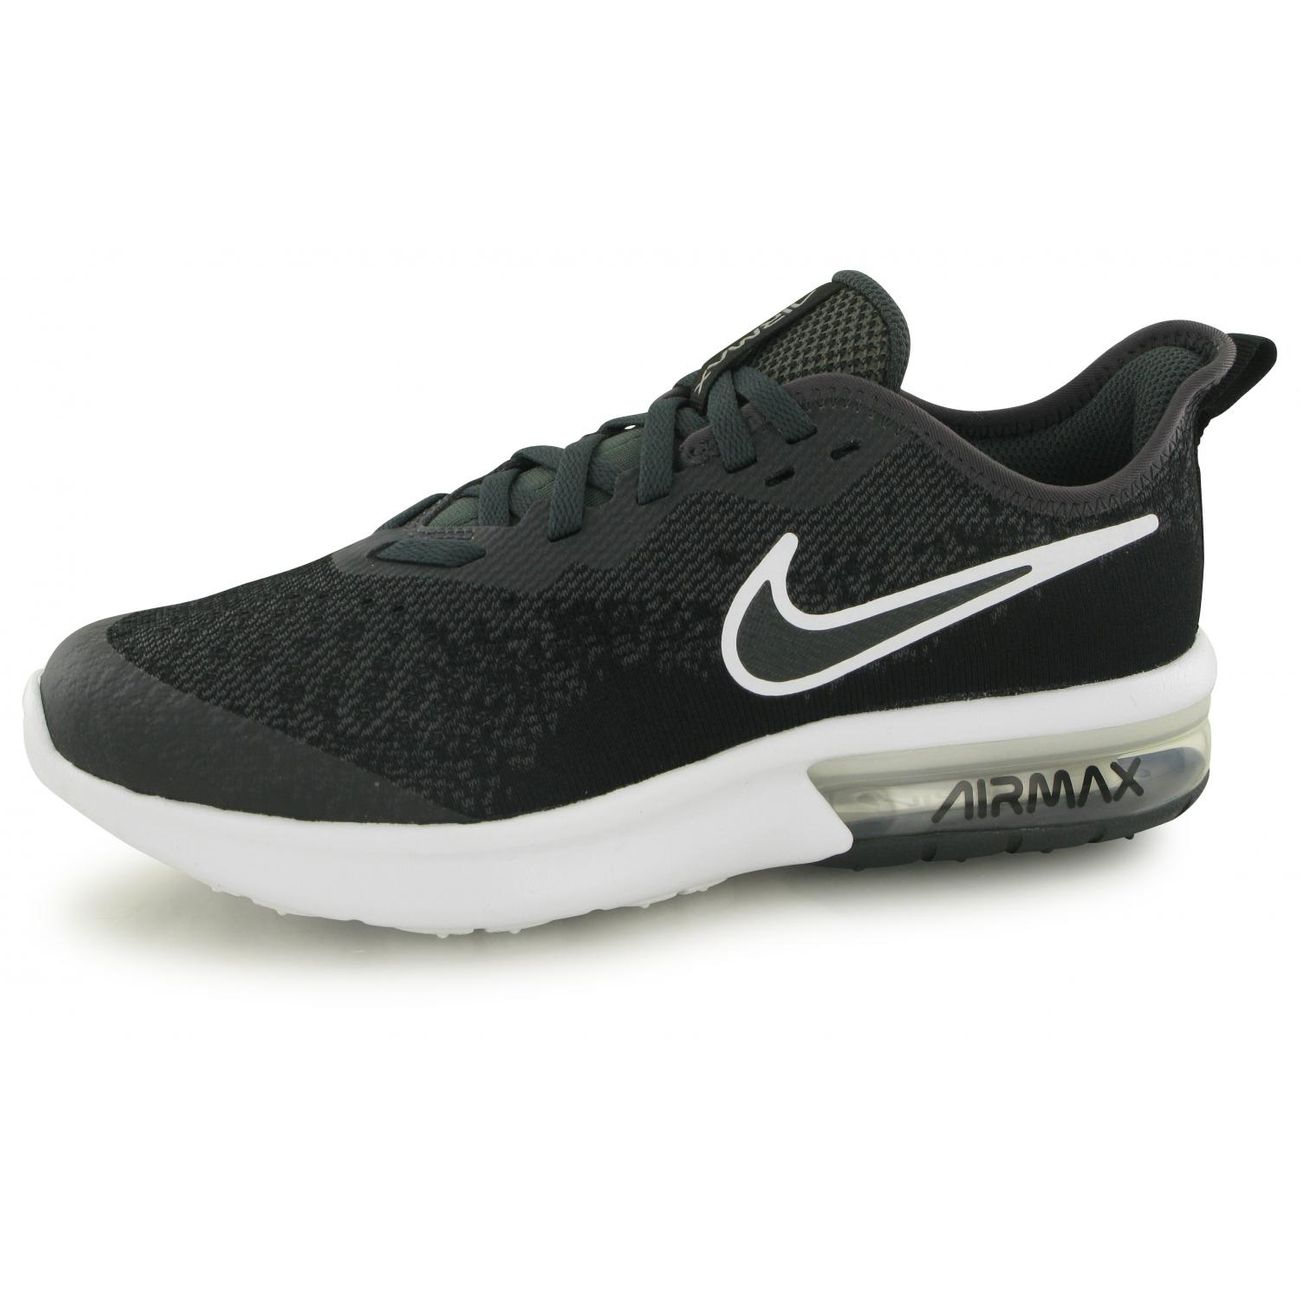 Mode Lifestyle garçon NIKE Air max sequent 4 ep jr